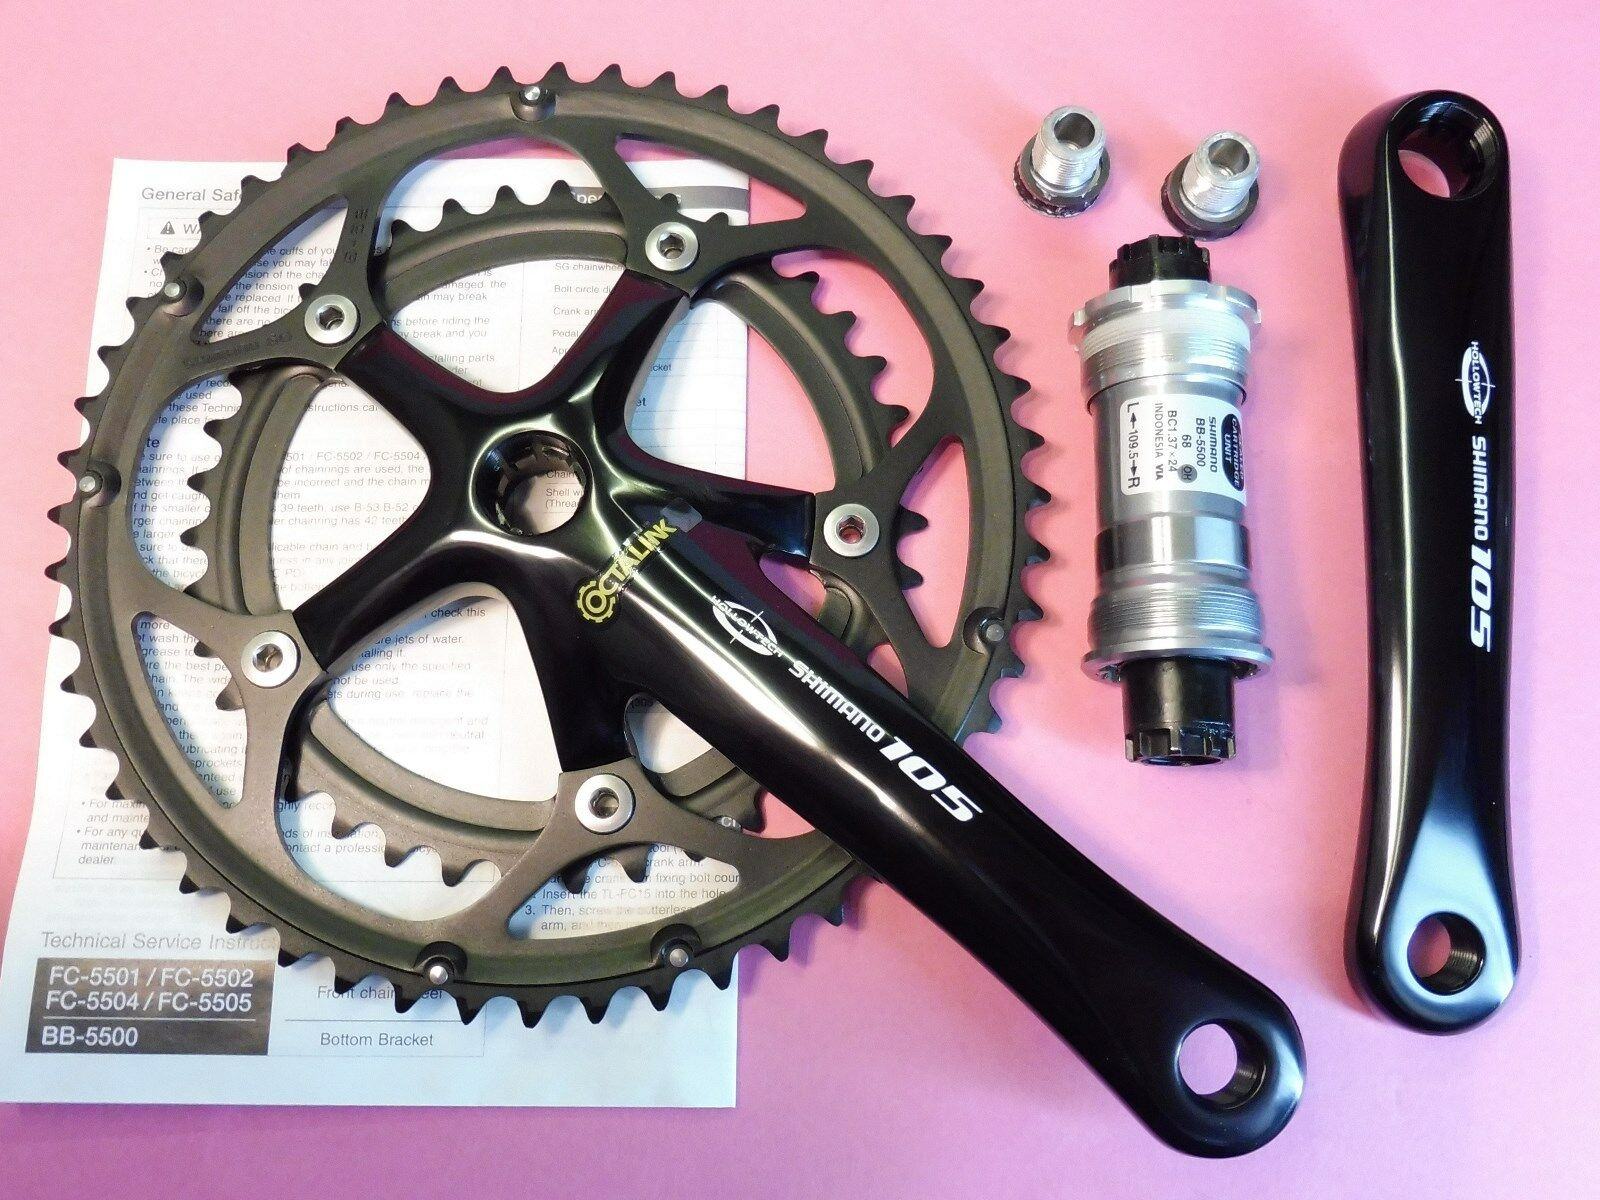 7f8edf28389 Shimano - 5502 9 105 bicycle 170 mm - 39.52 5500 68 - 109 NOS chainset  nndrst2848-Chainsets & Cranks